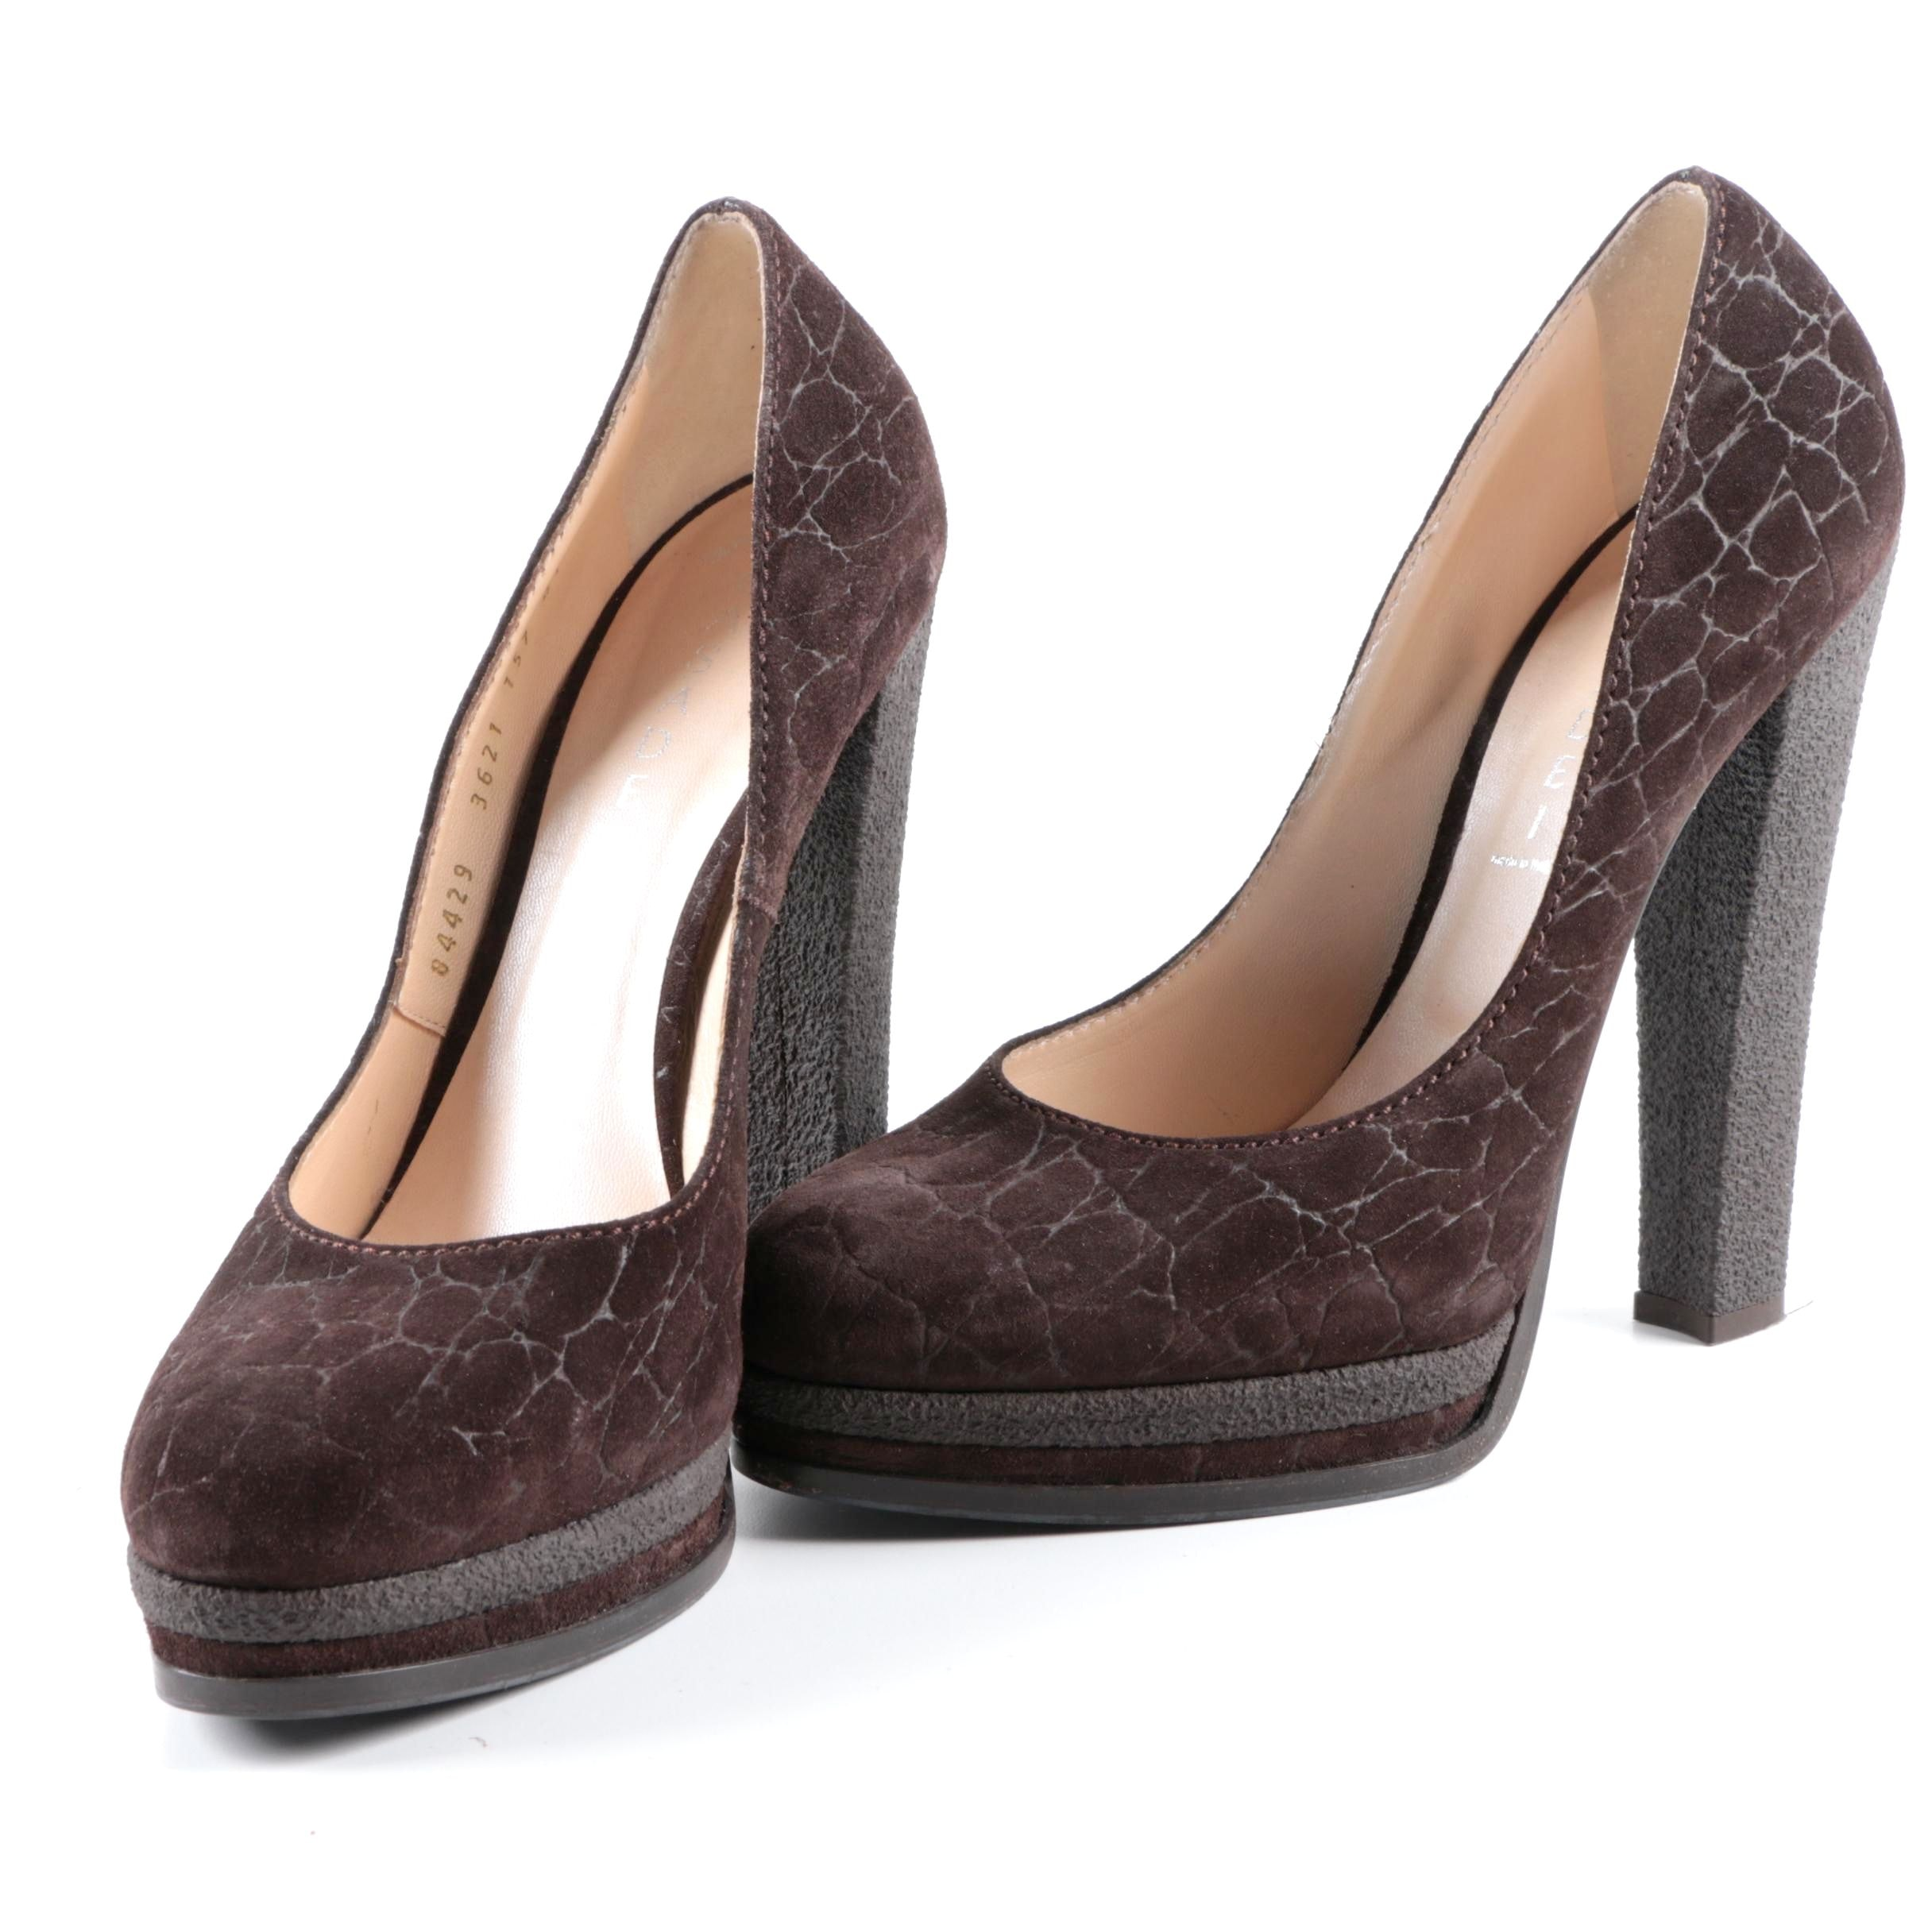 Casadei Brown Suede Platform Pumps